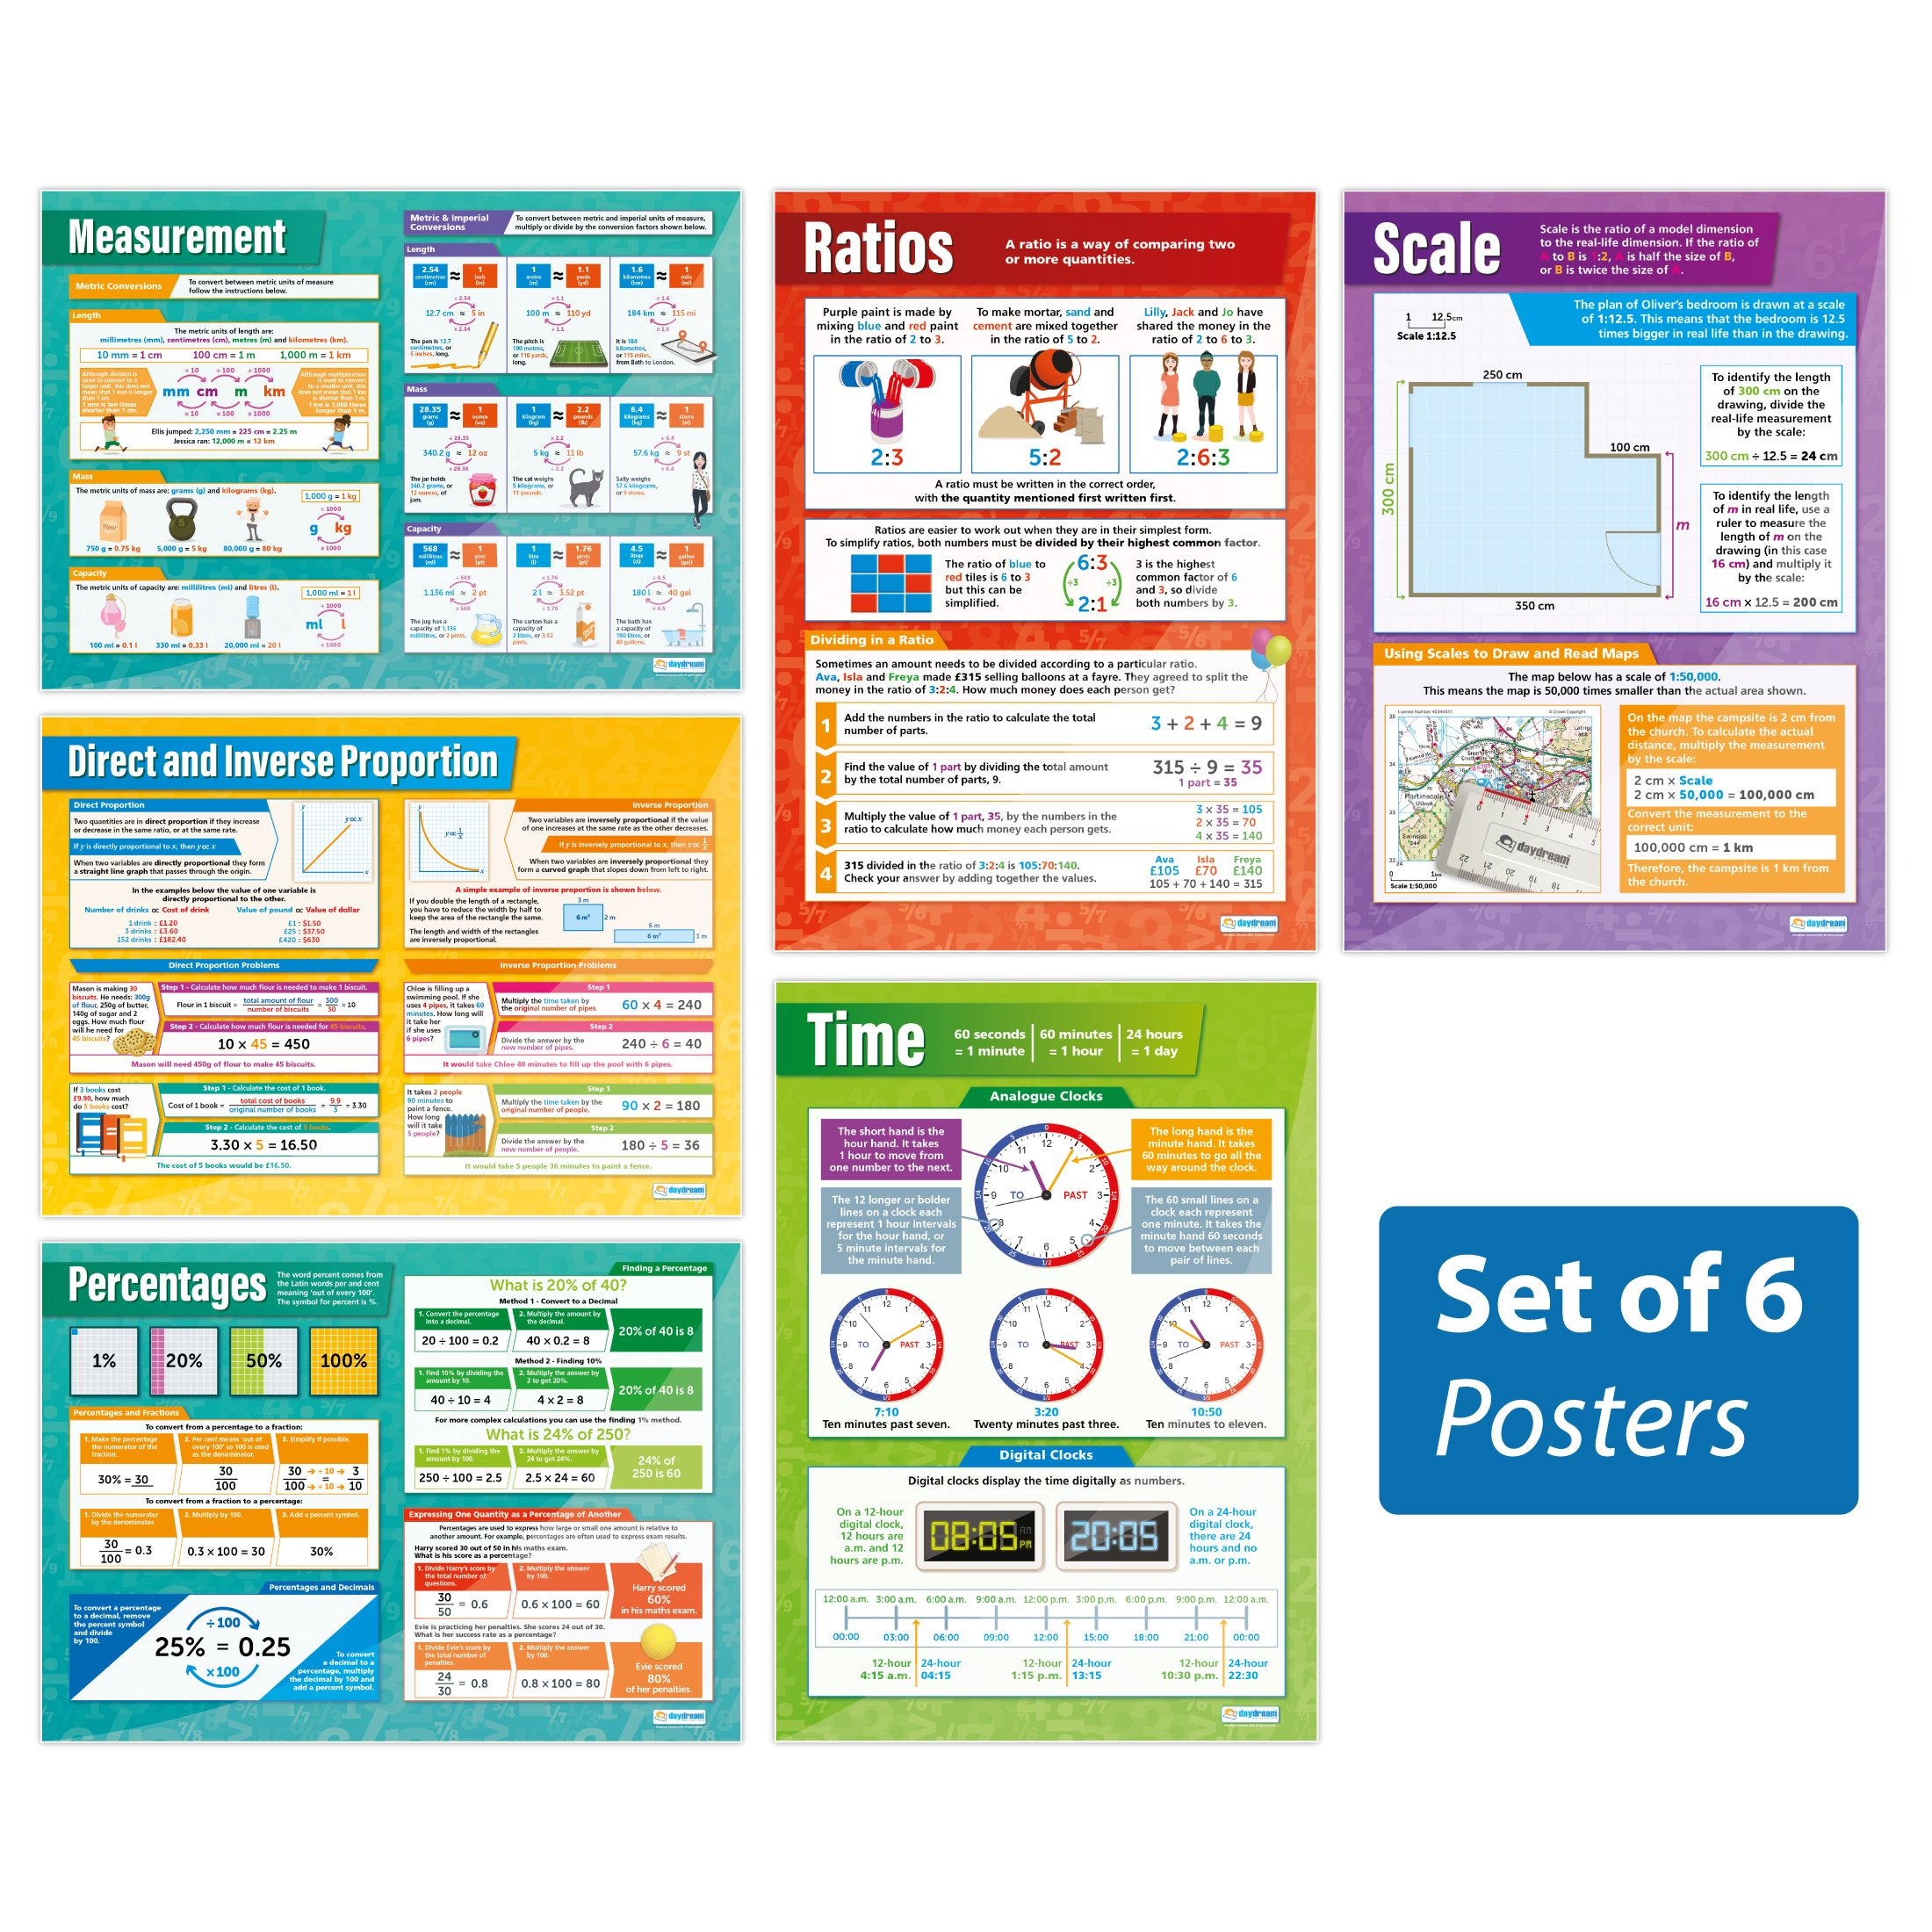 Ratio, Proportion & Rates of Change Posters - Set of 6   Math Posters   Laminated Gloss Paper Measuring 33'' x 23.5''   Math Charts for The Classroom   Education Charts by Daydream Education